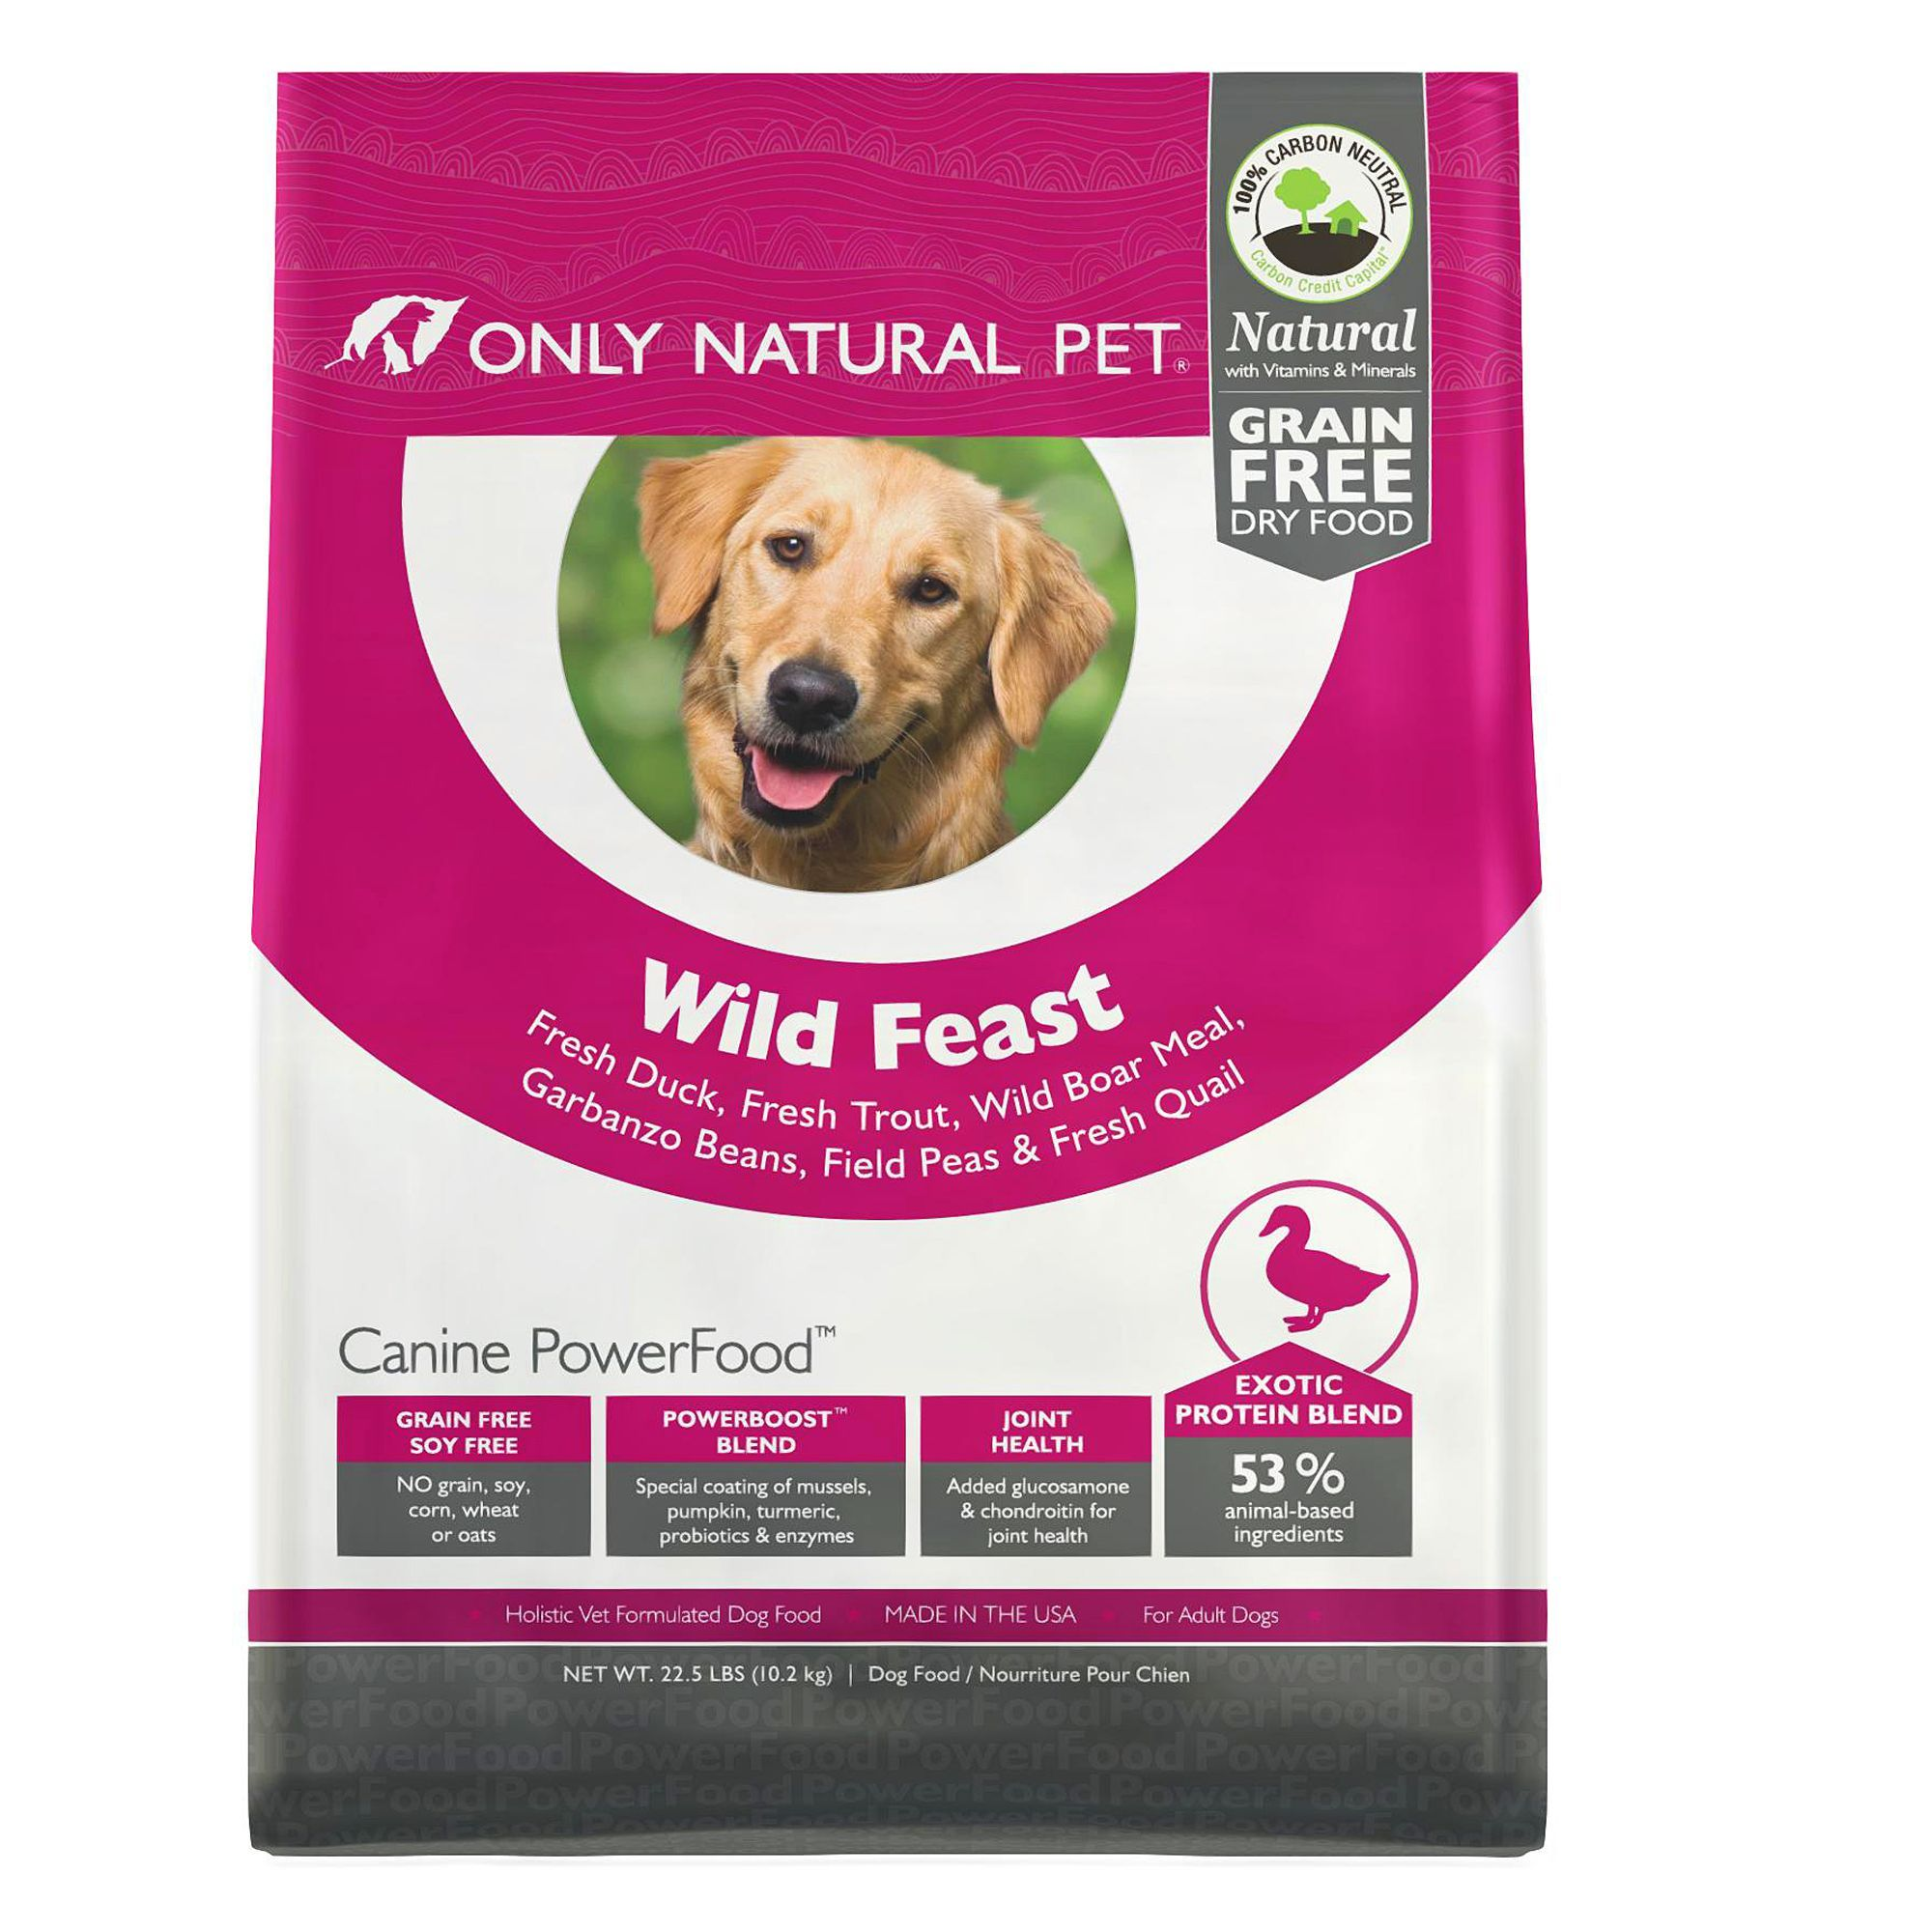 Only Natural Pet Canine Powerfood Wild Feast Dog Food Limited